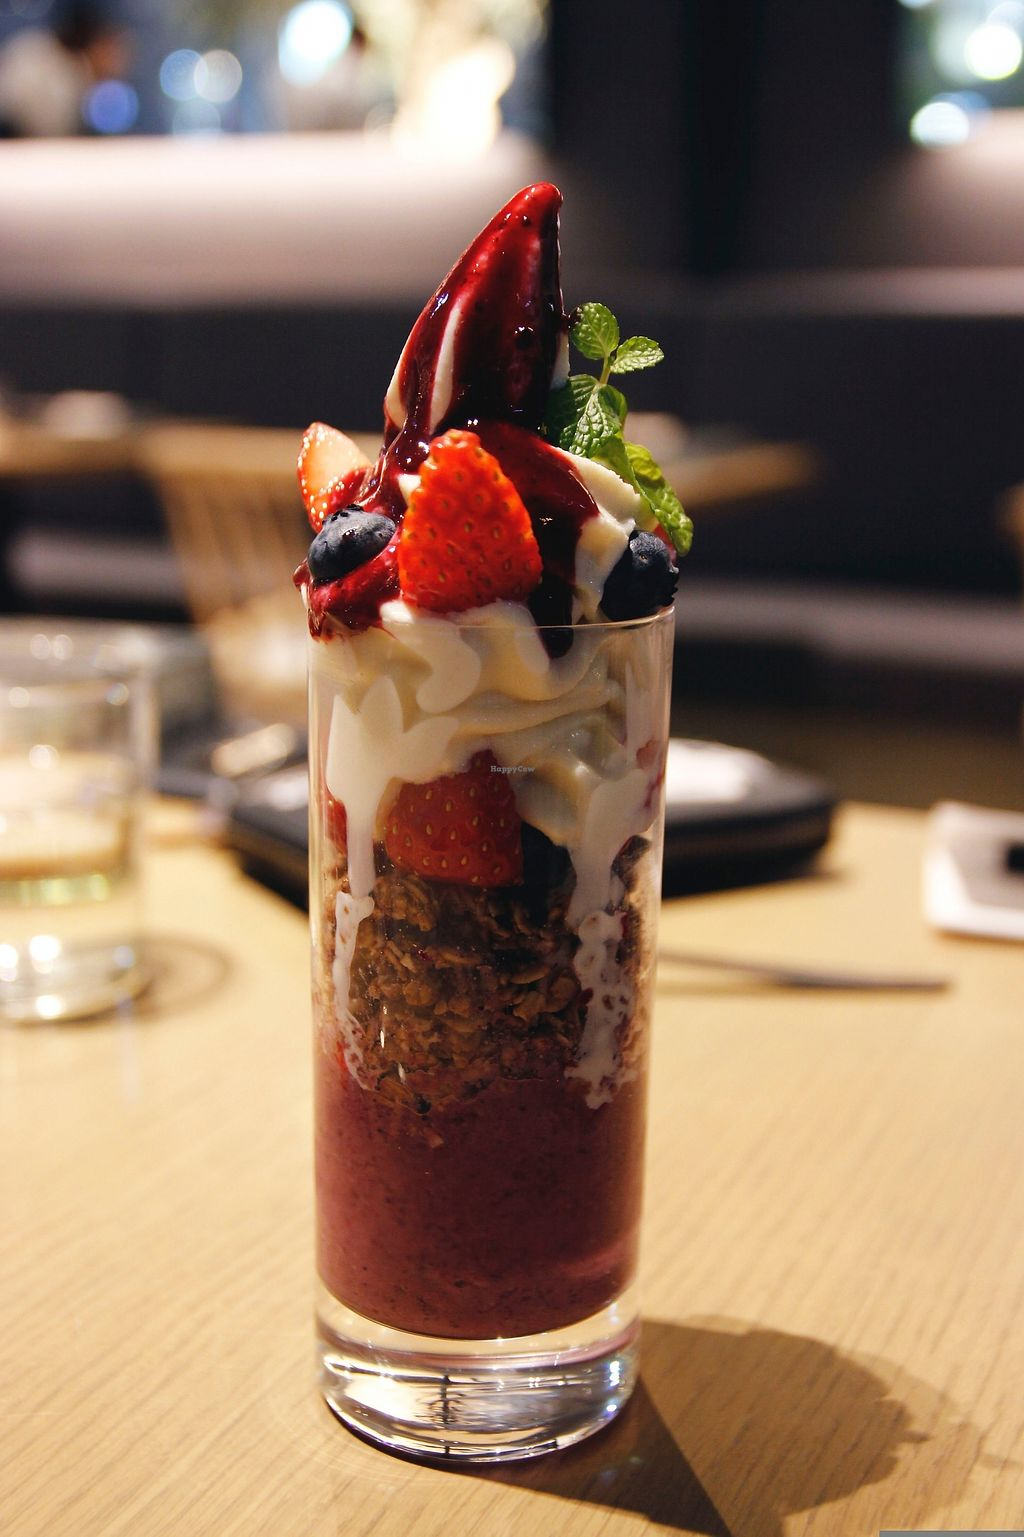 """Photo of Cosme Kitchen Adaptation - Omotesando Hills  by <a href=""""/members/profile/YukiLim"""">YukiLim</a> <br/>Vegan berry parfait <br/> July 17, 2017  - <a href='/contact/abuse/image/94441/281450'>Report</a>"""